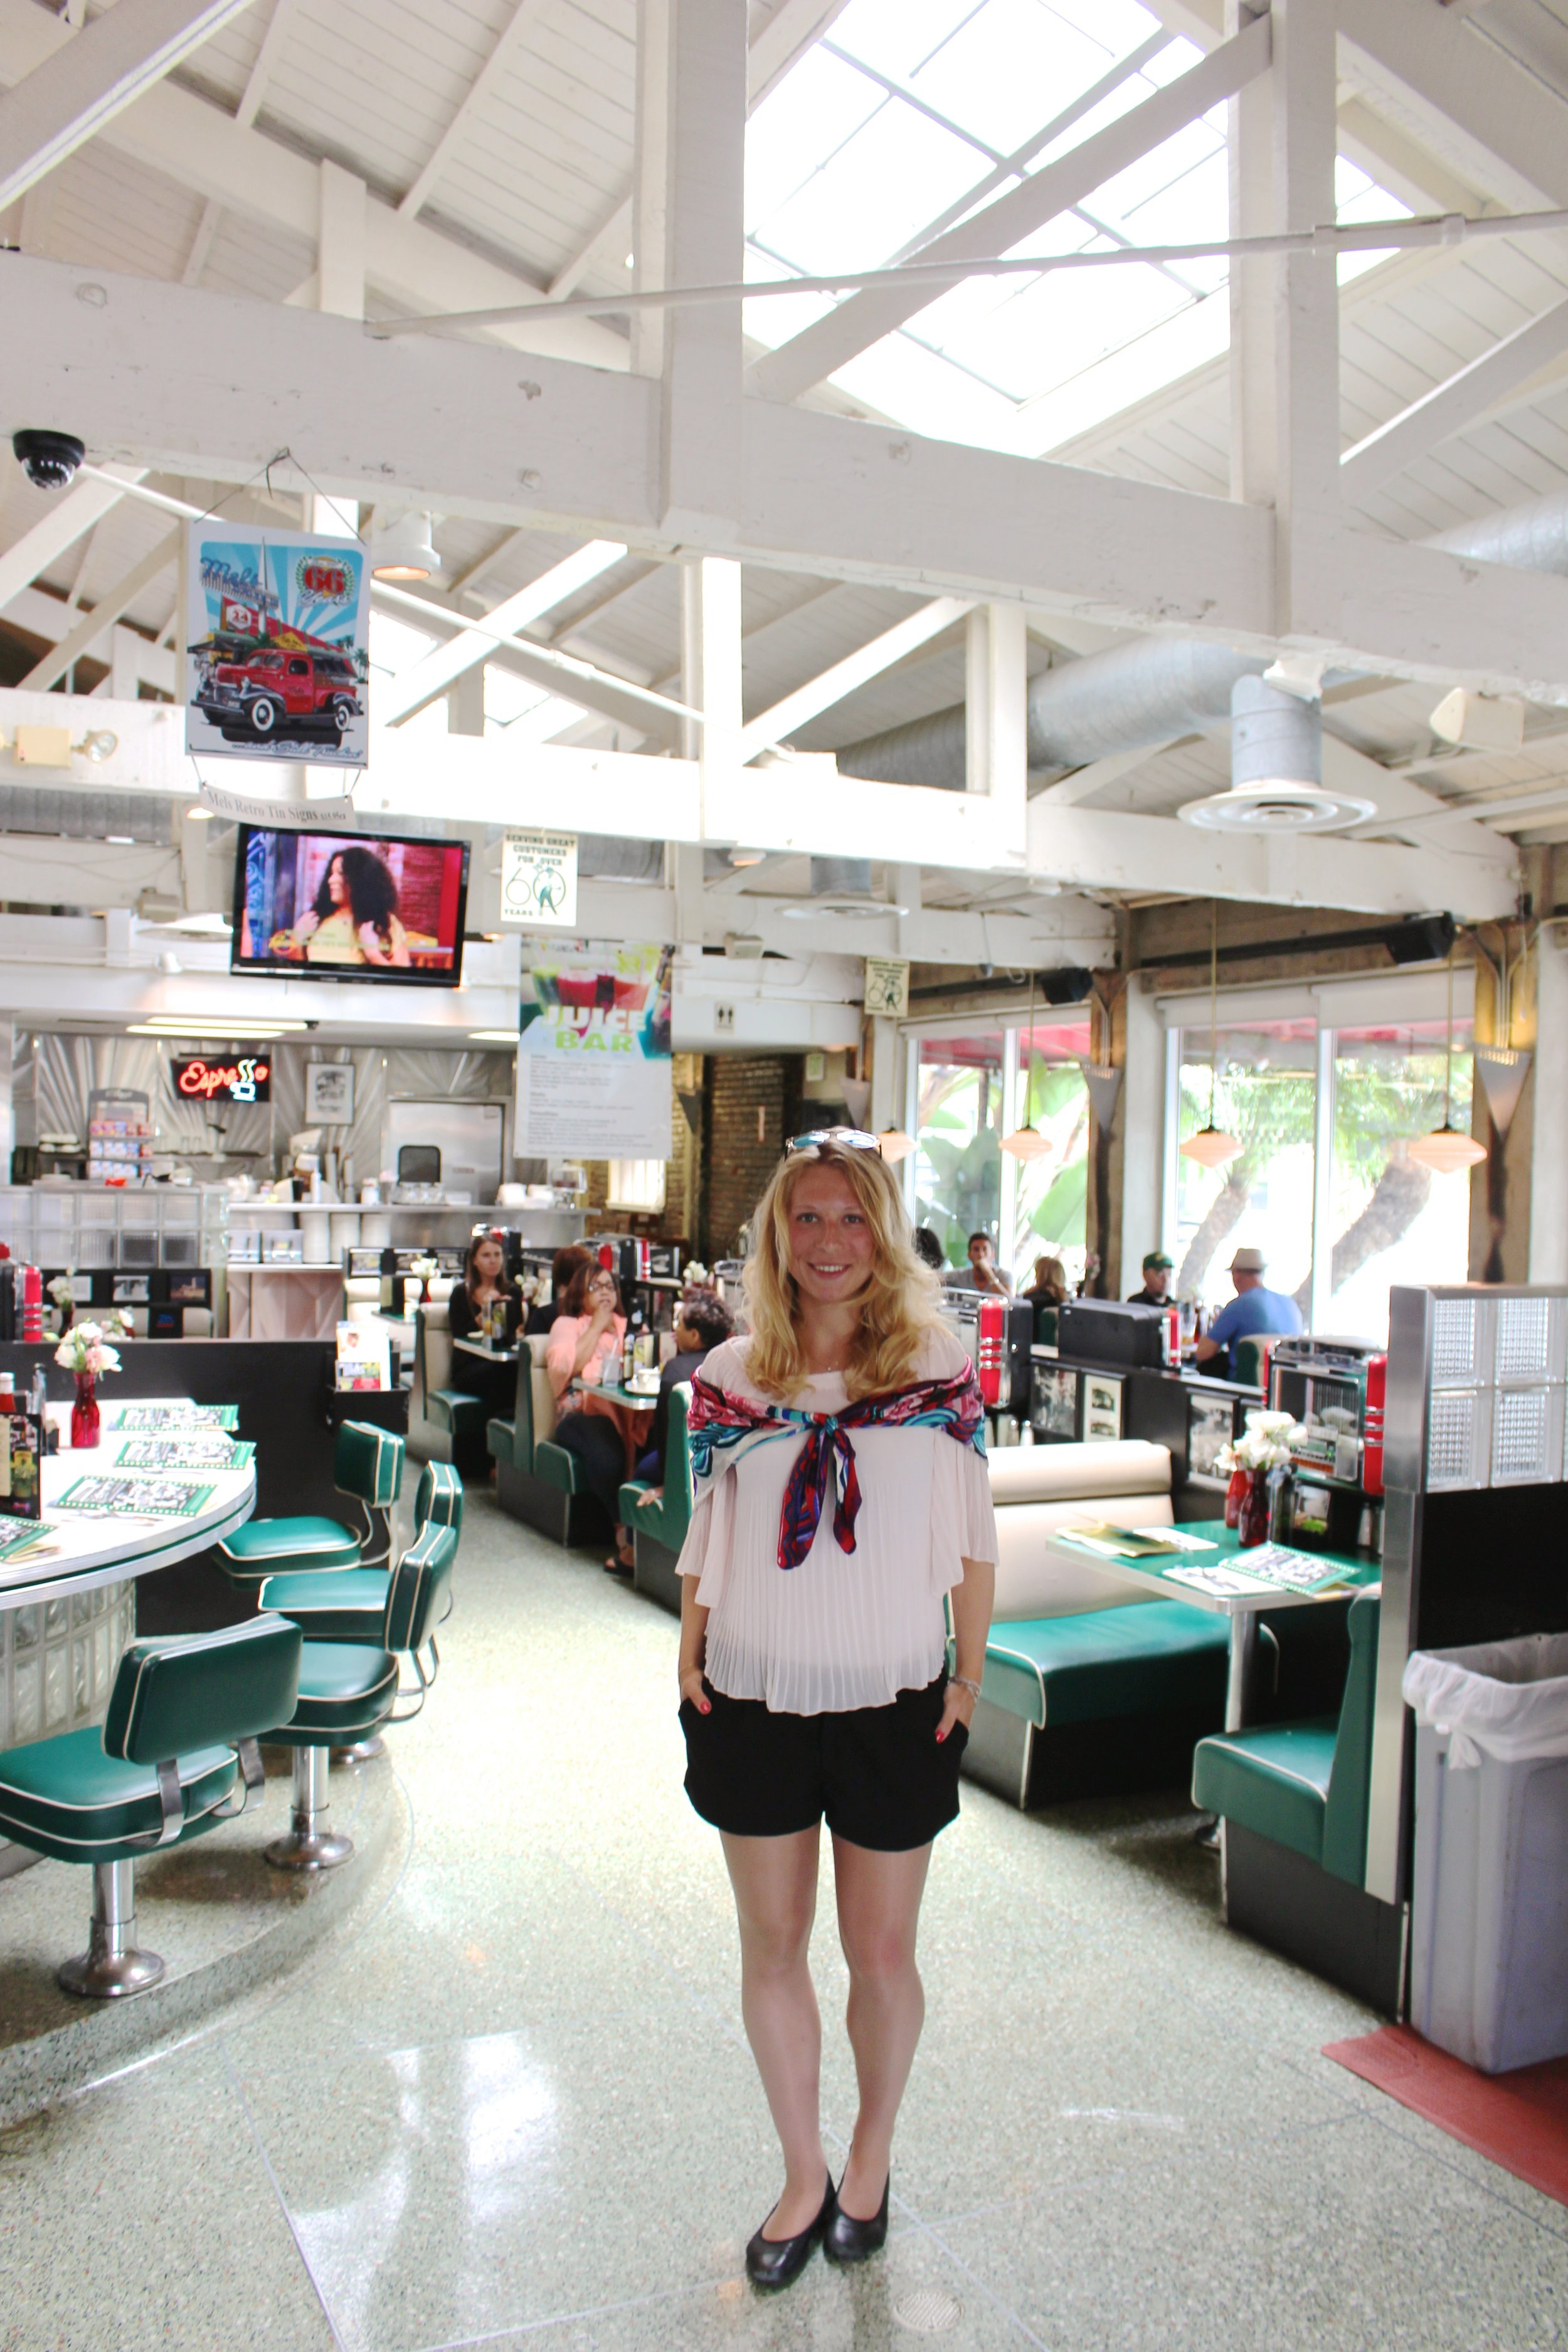 Mels -> Coolest diner in LA :)